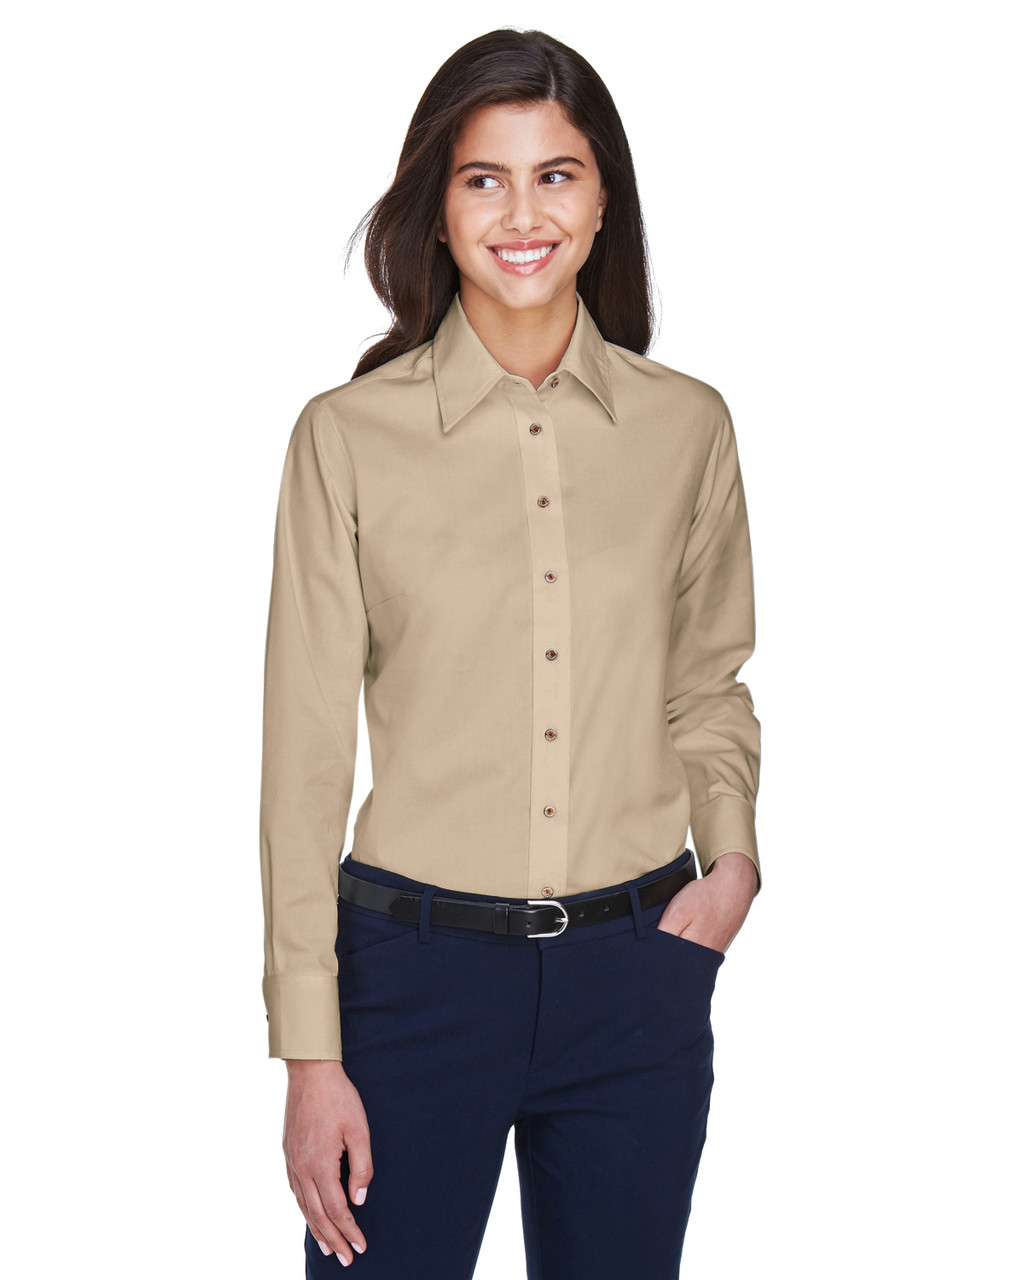 Stone - M500W Harriton Easy Blend Long-Sleeve Twill Shirt with Stain-Release | BlankClothing.ca